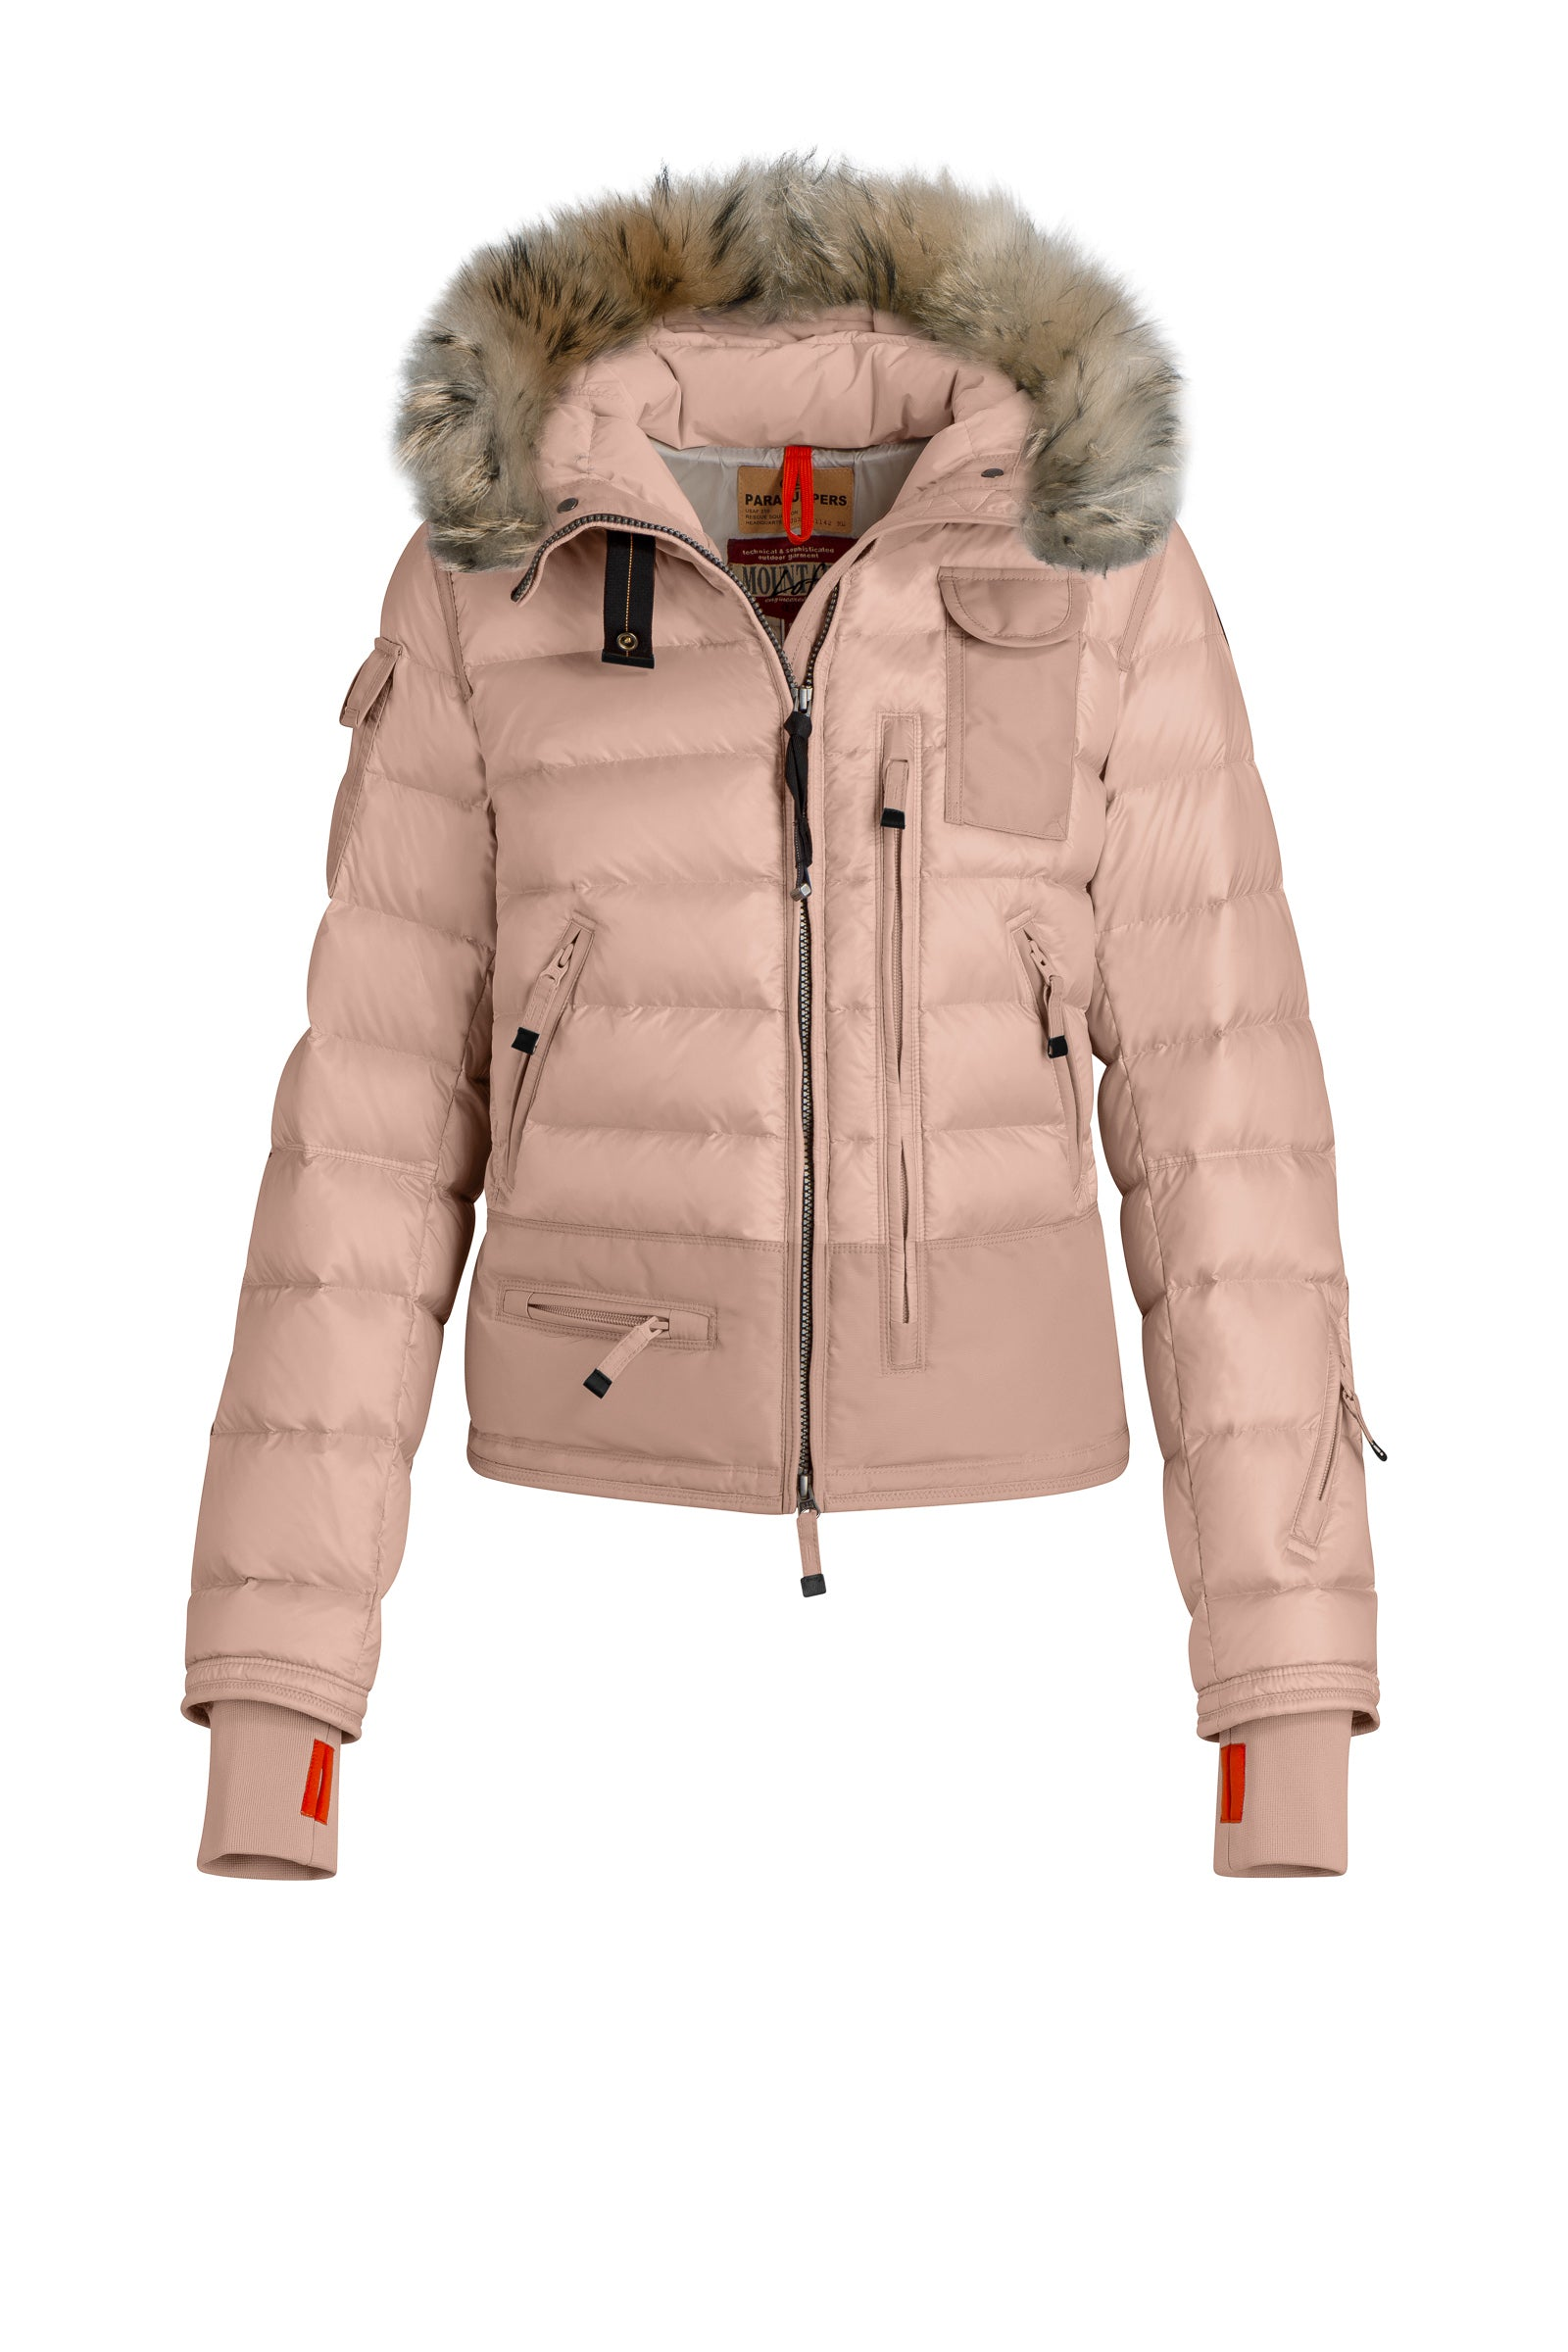 Parajumpers Skimaster Jacket in Powder Pink – BOUTIQUE TAG cc568c55b